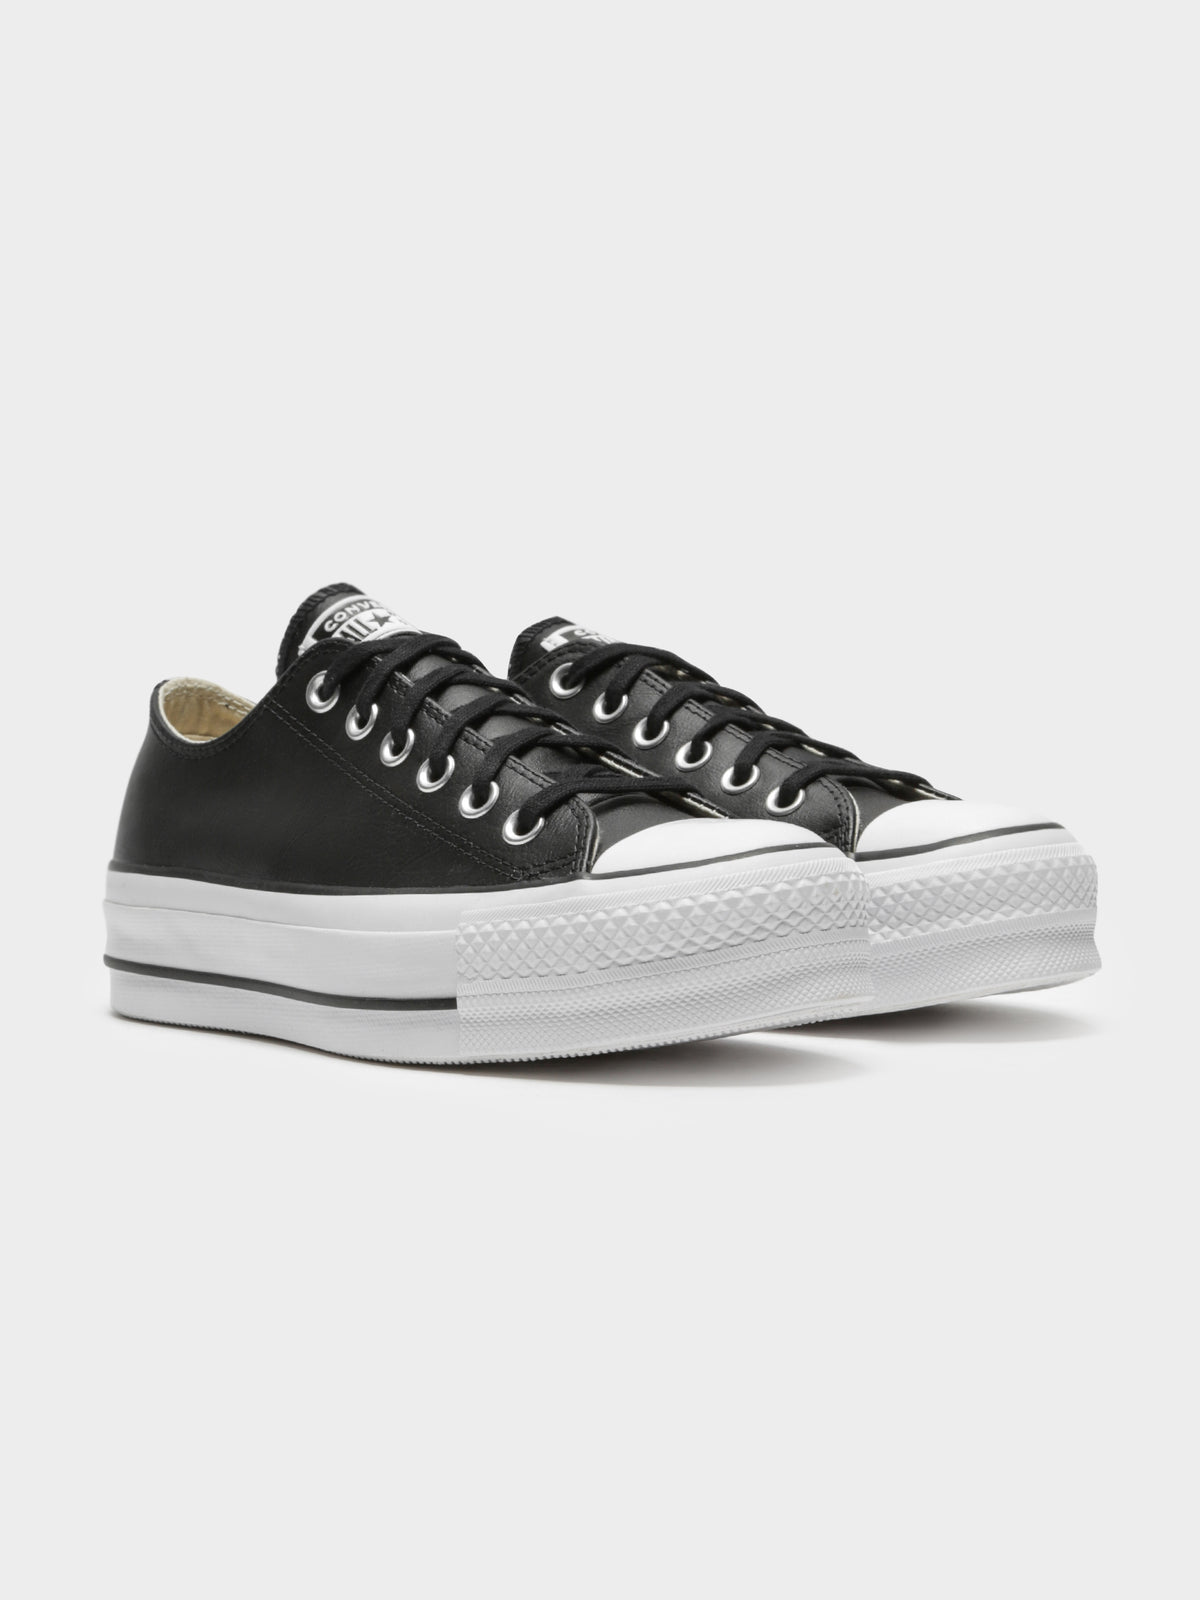 Chuck Taylor All Star Platform Clean Leather Low-Top Sneakers in Black